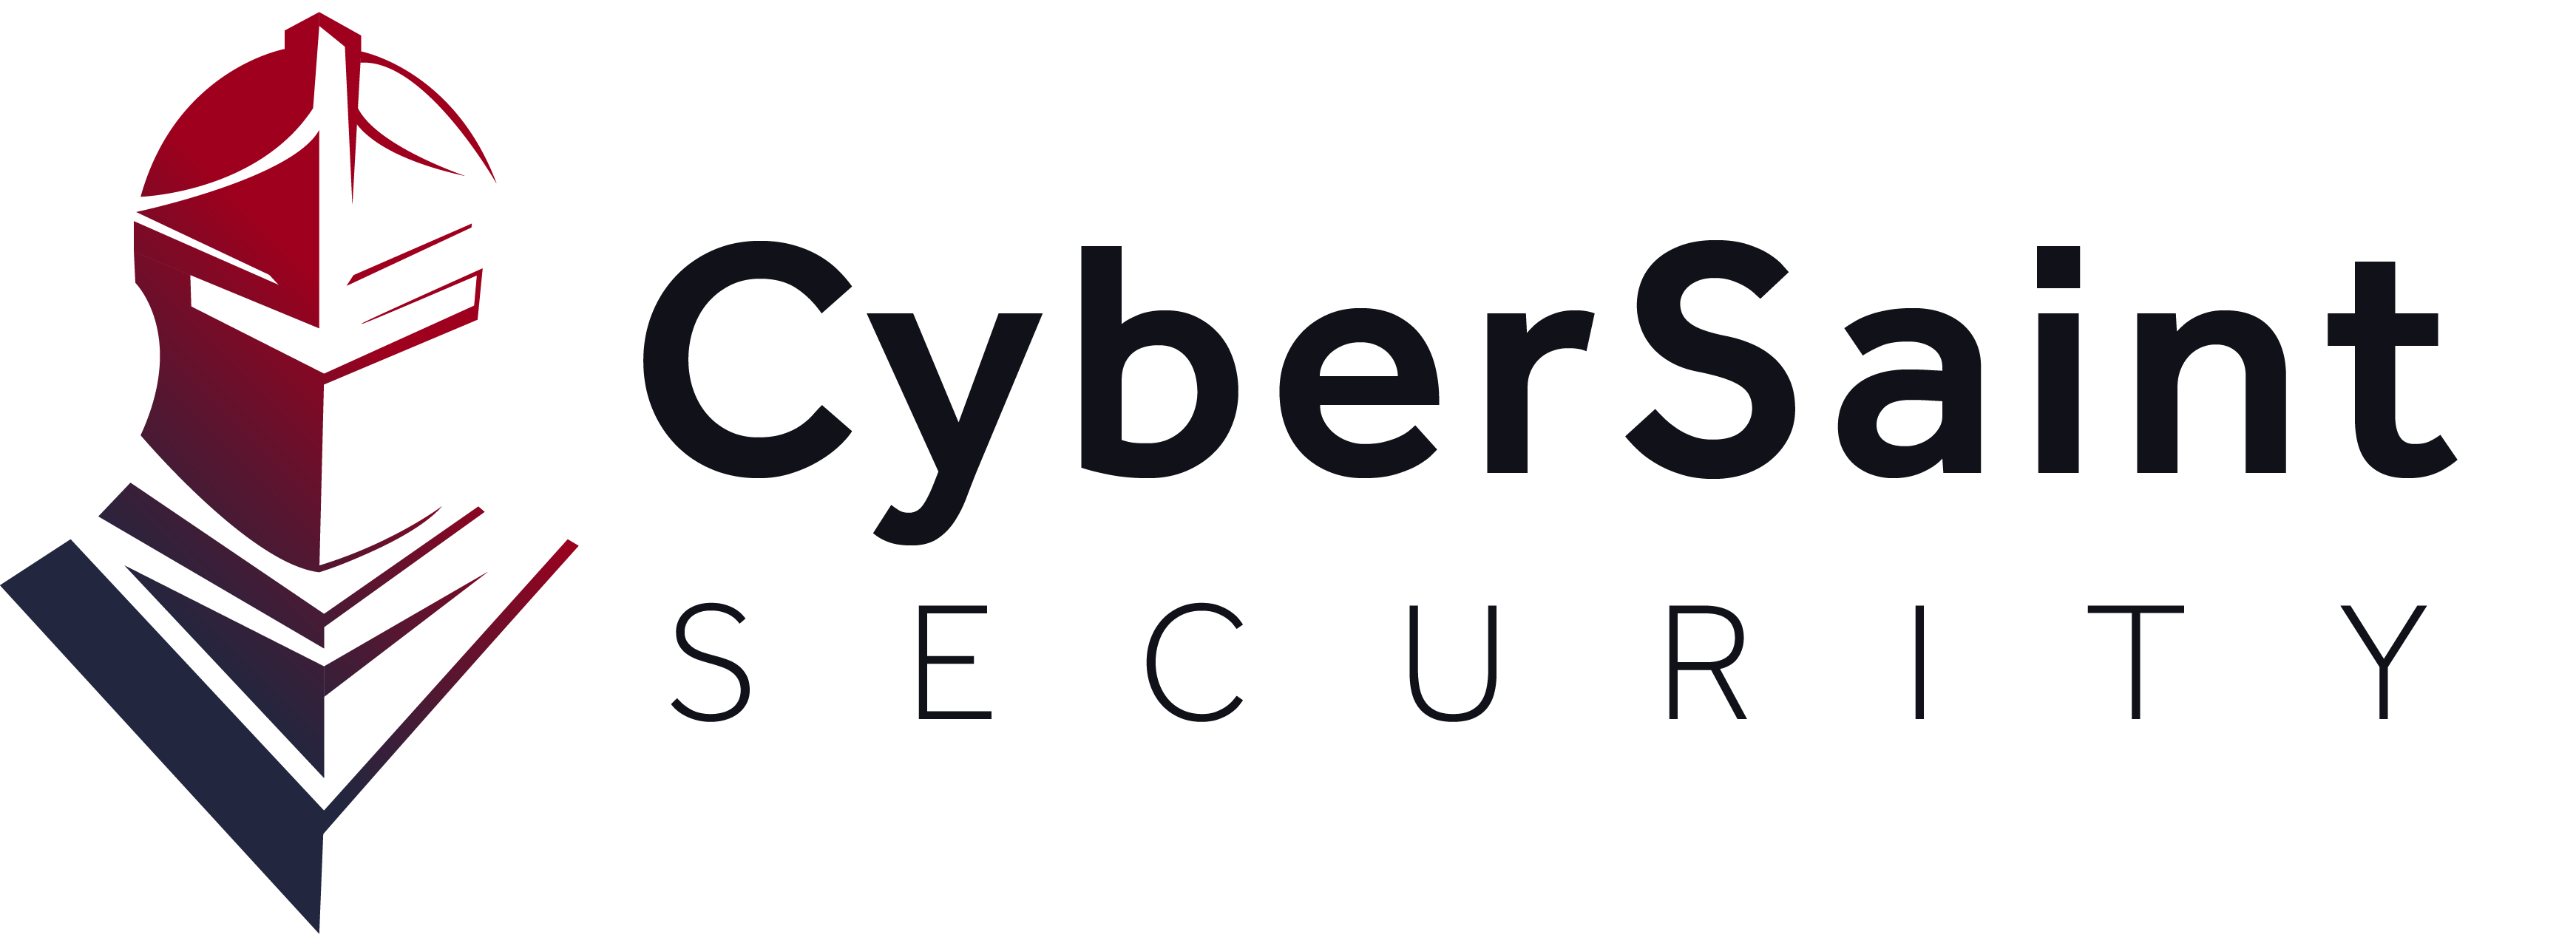 CyberSaint Security